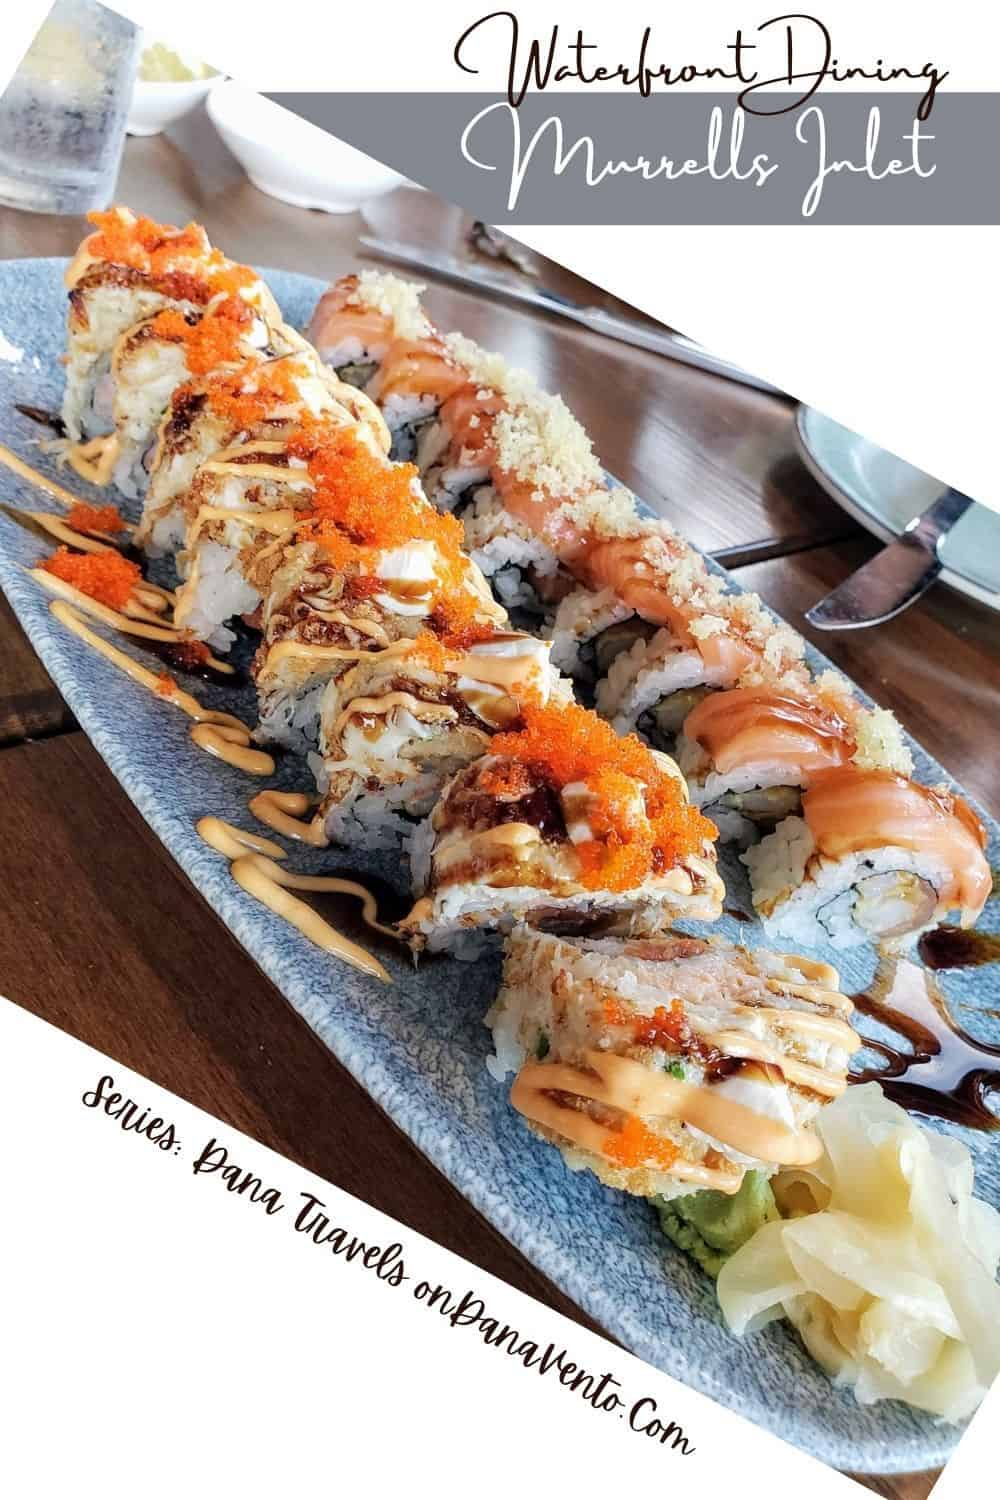 Wicked Tuna Murrells Inlet sushi roll: Murrells Inlet Waterfront Dining